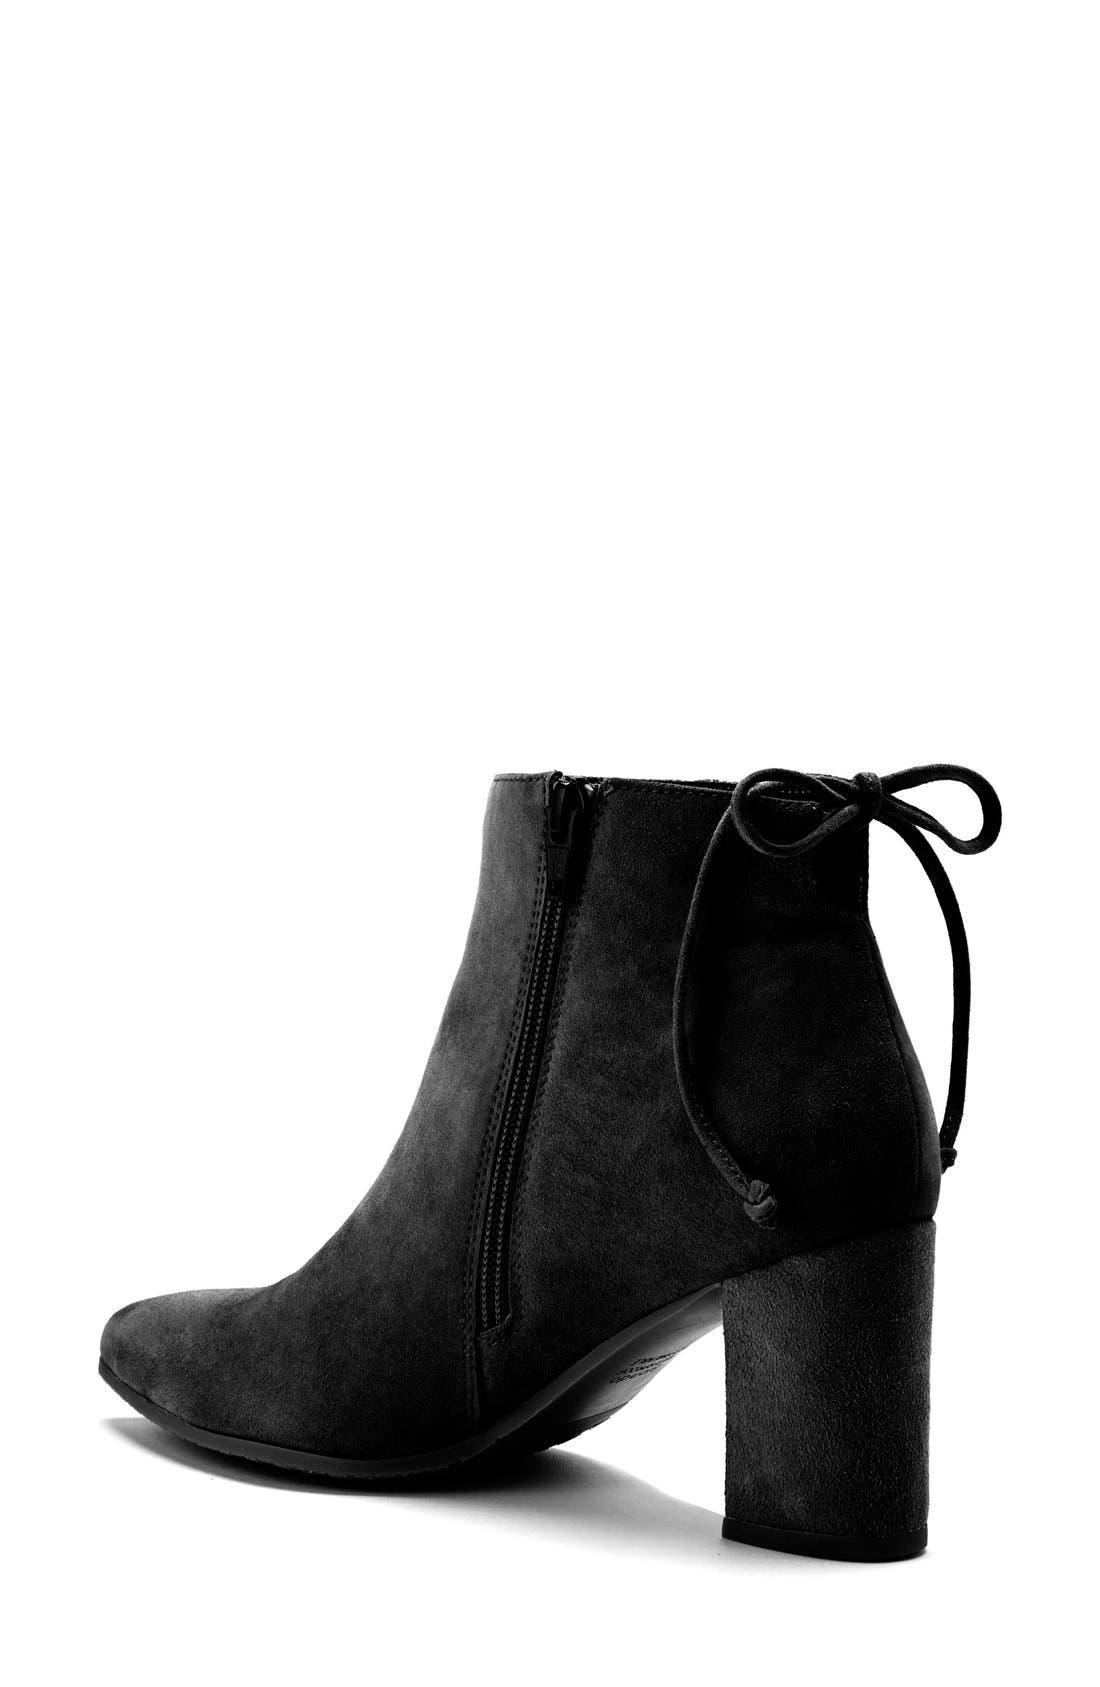 Tiana Waterproof Pointy Toe Bootie,                             Alternate thumbnail 2, color,                             006